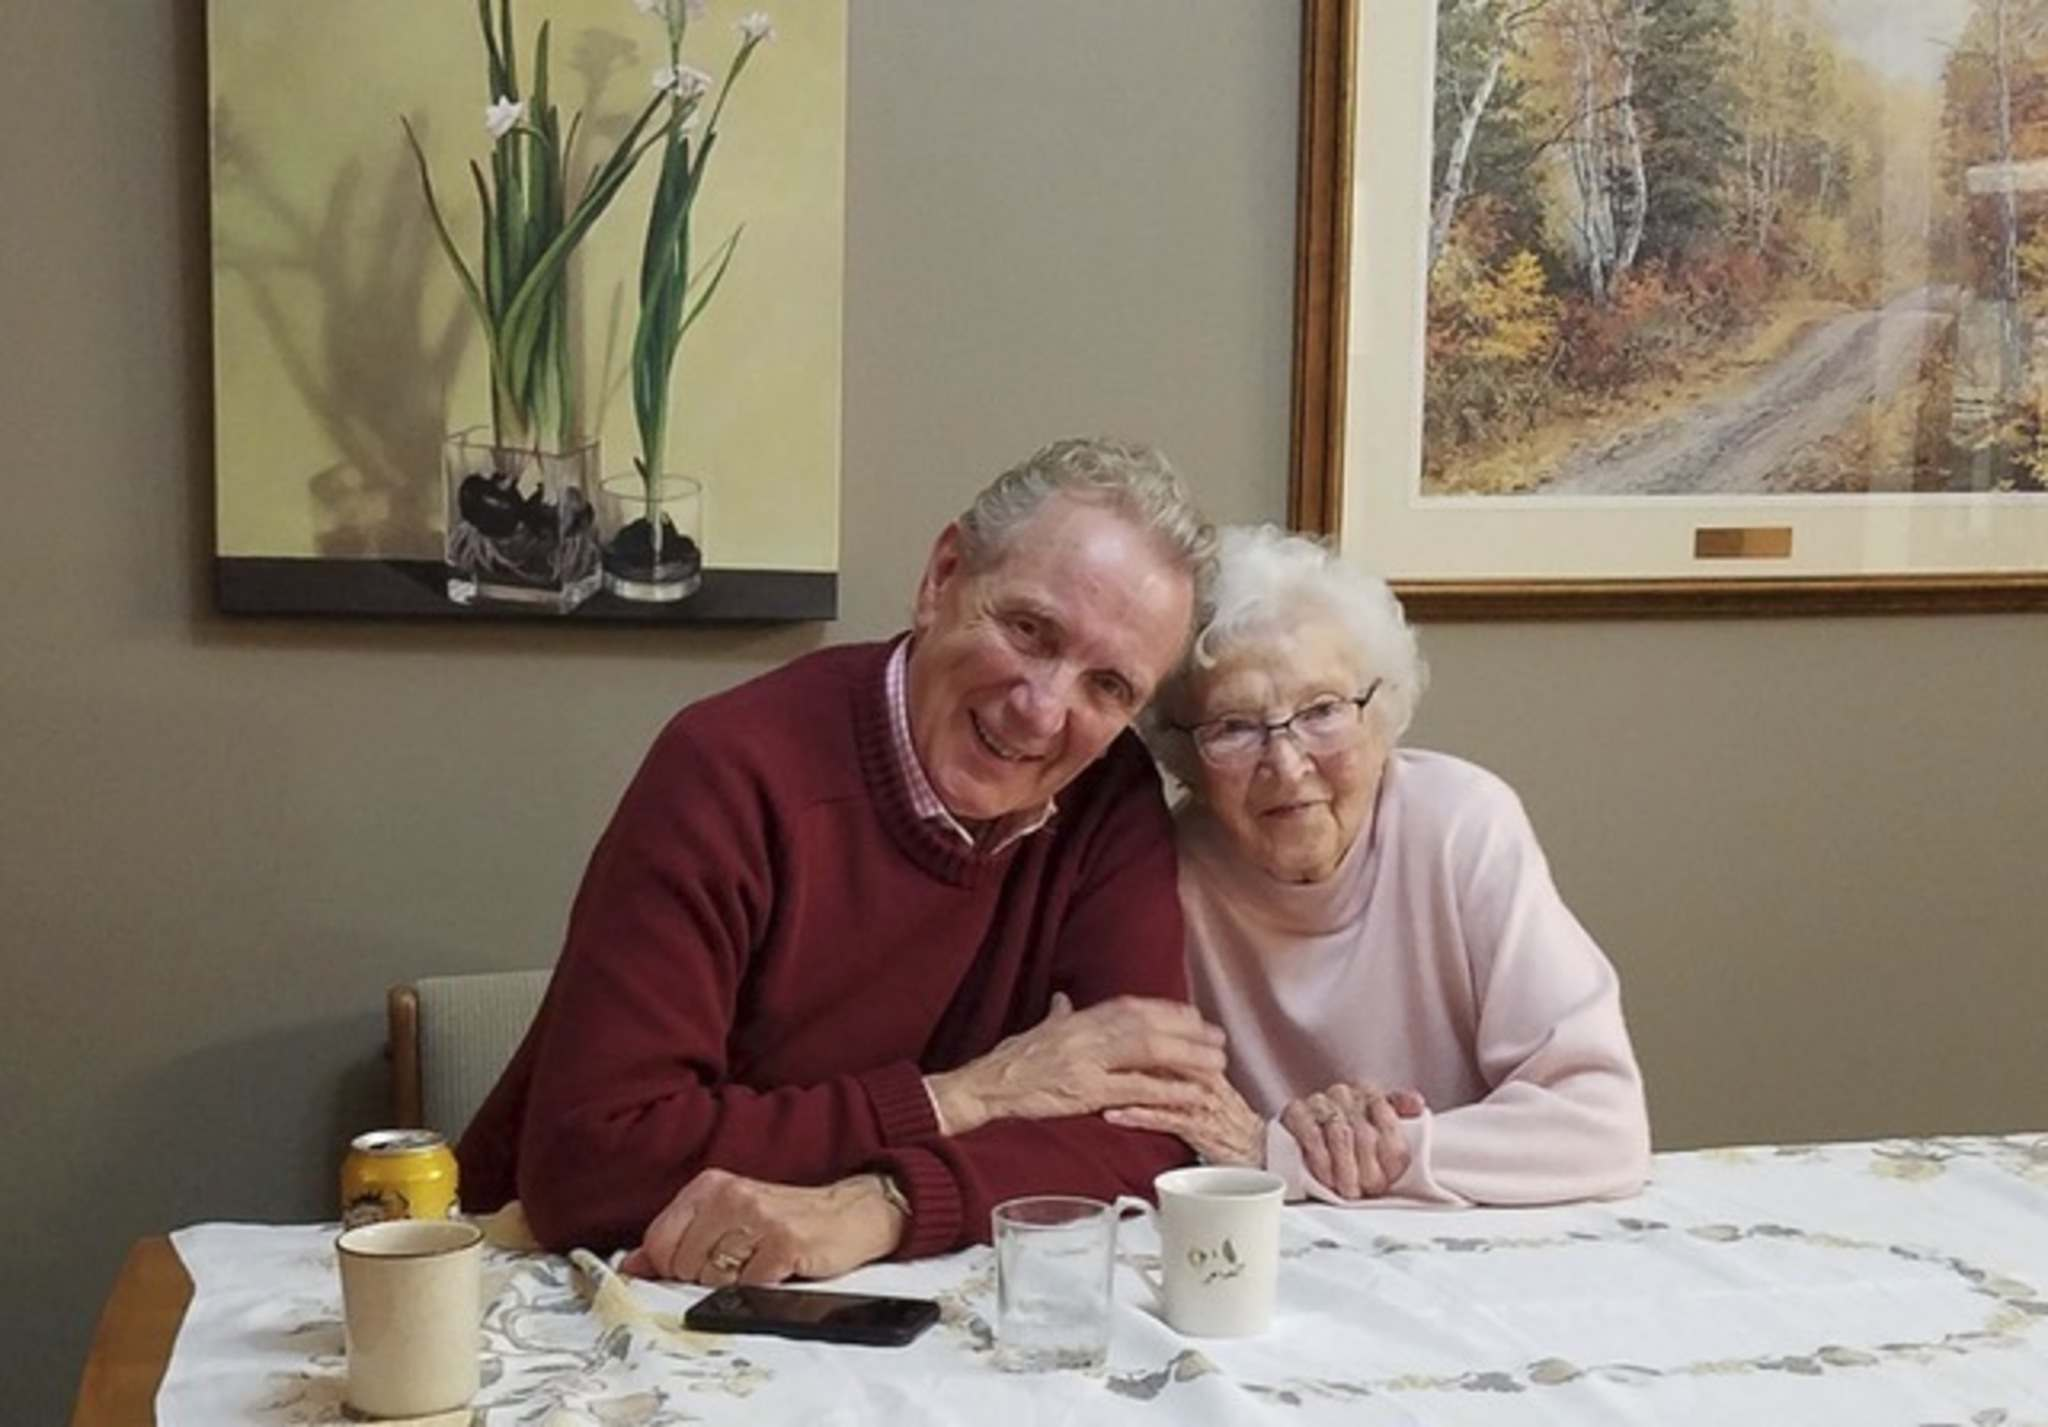 """Supplied</p><p>Linie Friesen and her son Eric. Linie was known for being hospitable and cheerful. """"There was an elegance, a generosity, and yet a downhomeness,"""" says longtime friend Lori Hiebert.</p></p>"""